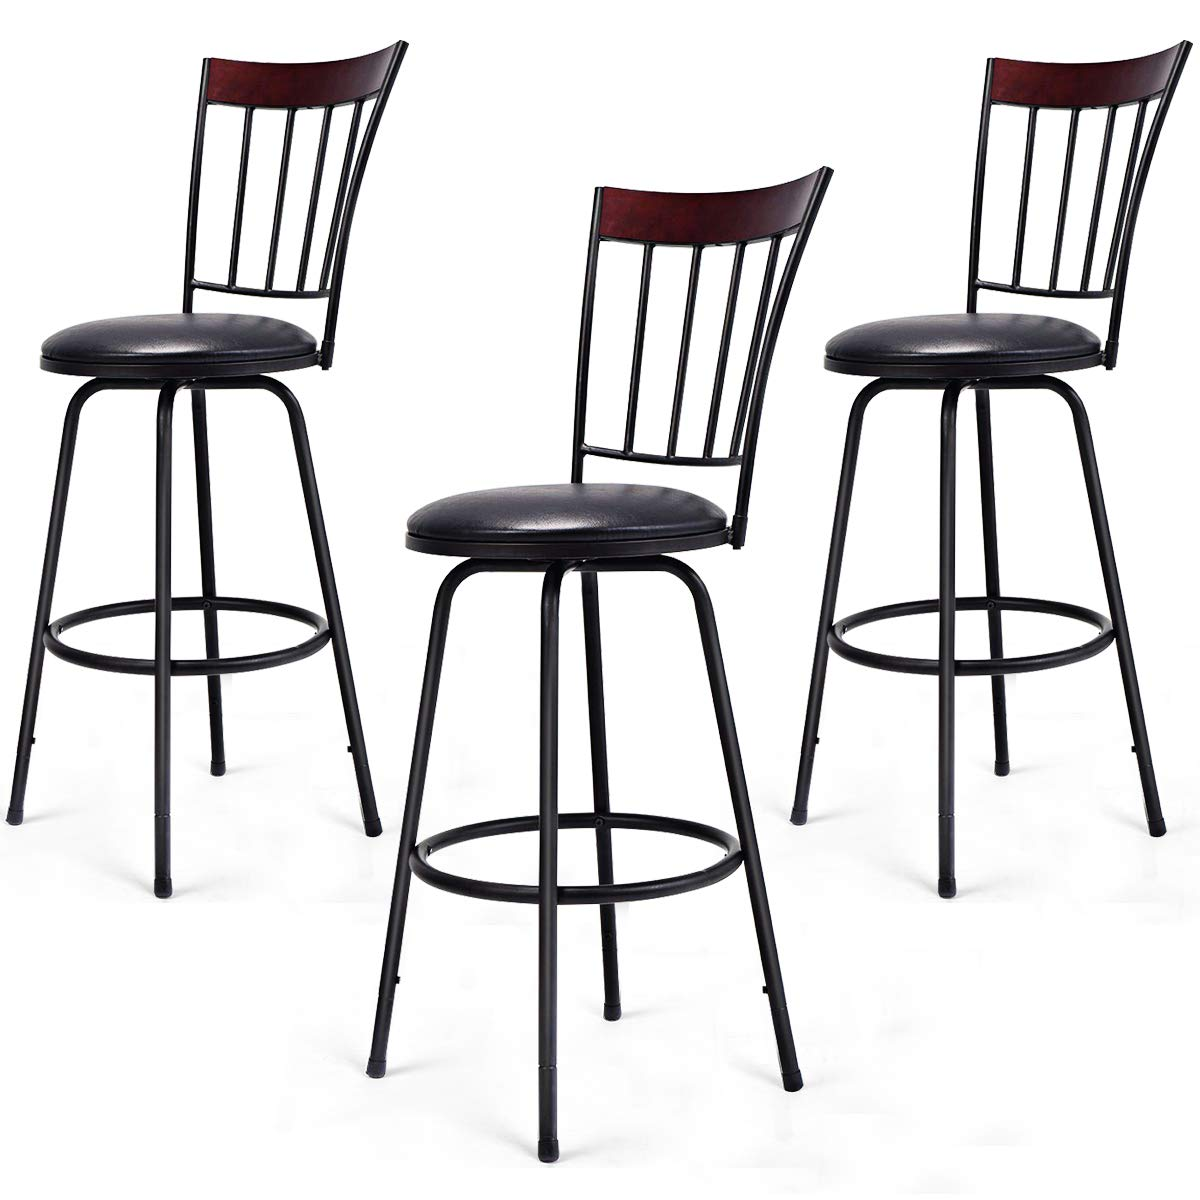 COSTWAY Bar Stools, Modern Swivel Height-Adjustable PU Leather Counter Metal Chair with Ergonomic Backrest Footrest, for Bistro Pub Dining Room Kitchen Furniture Set of 3